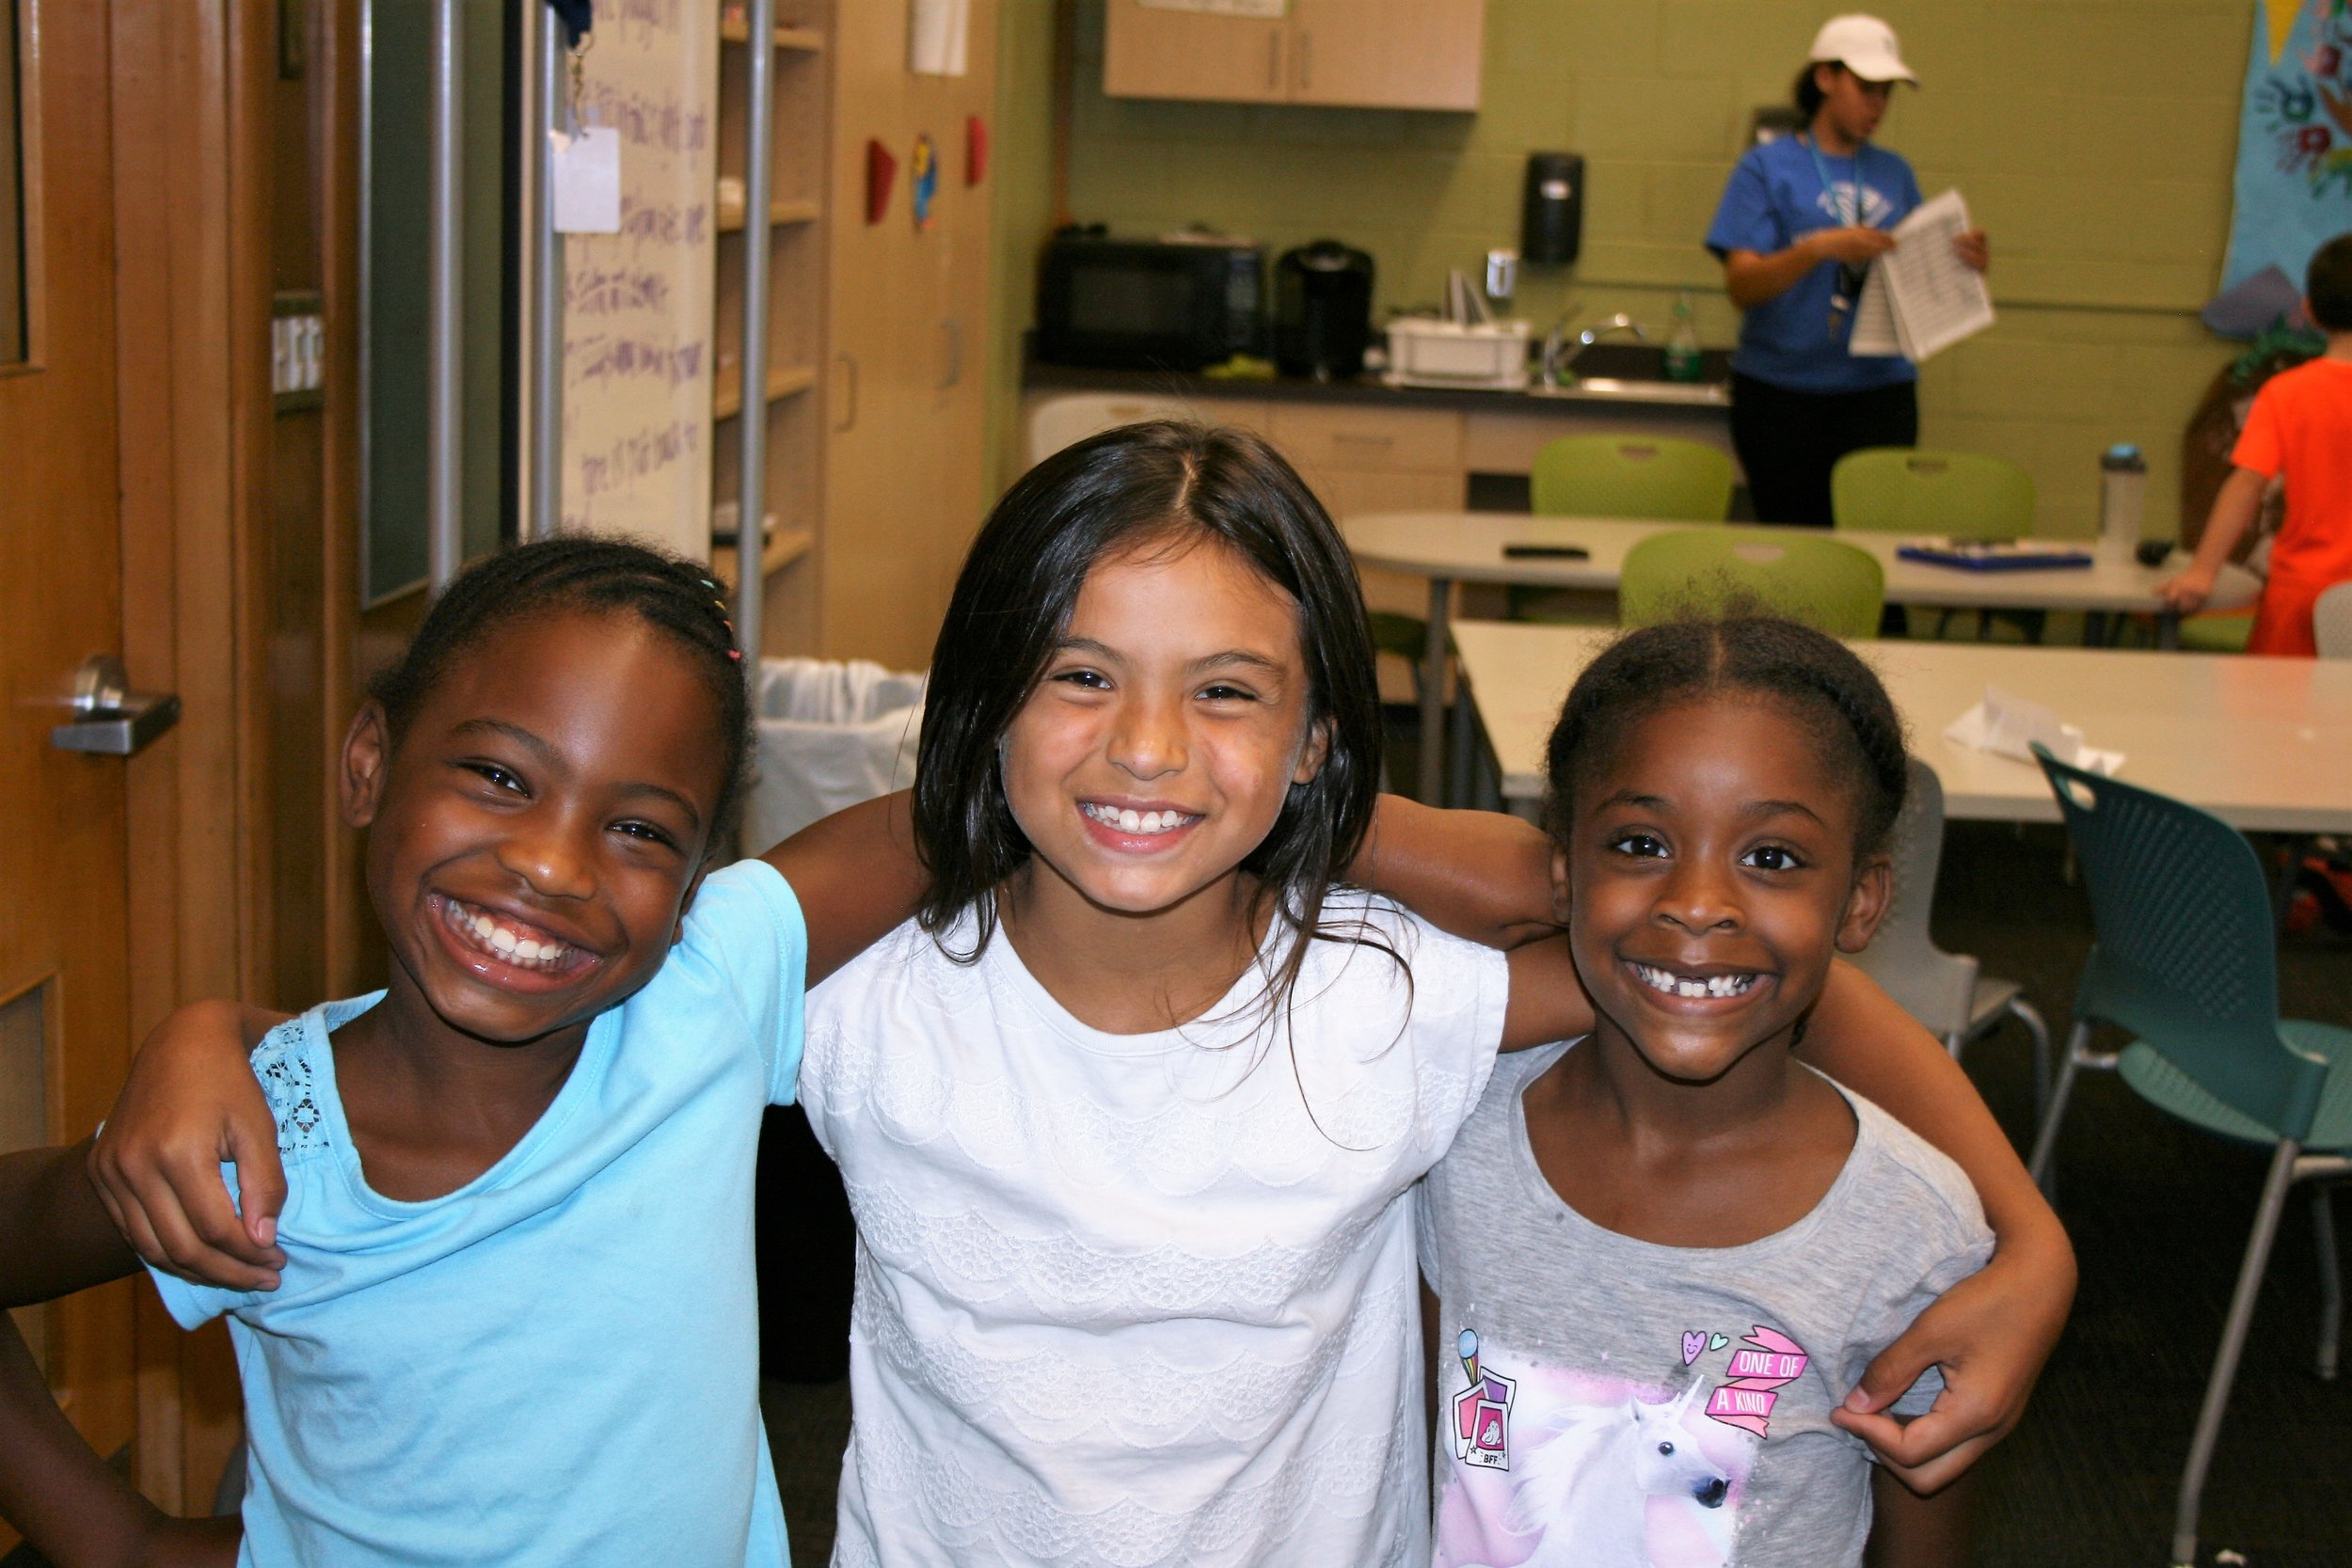 Photo Credit: Boys & Girls Clubs of Central Iowa